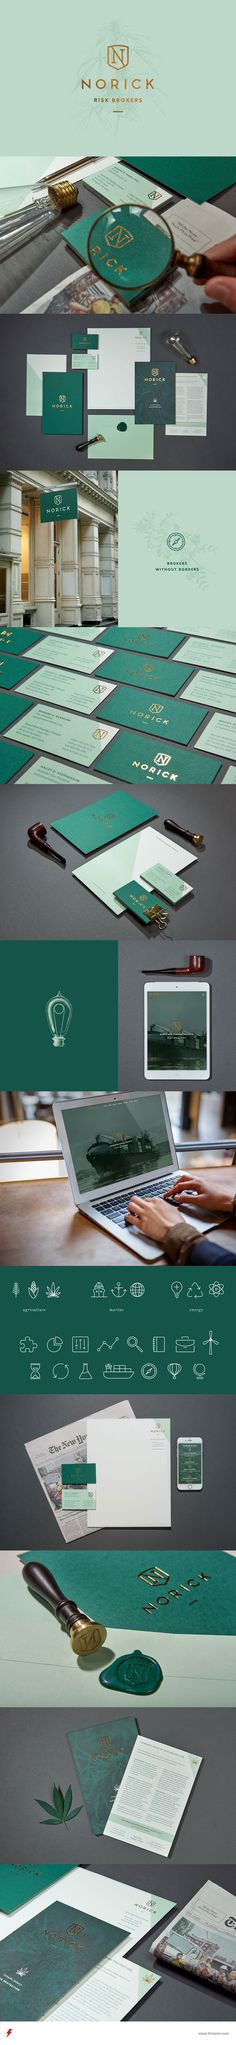 Norick Brand Identity by Braizen on Behance